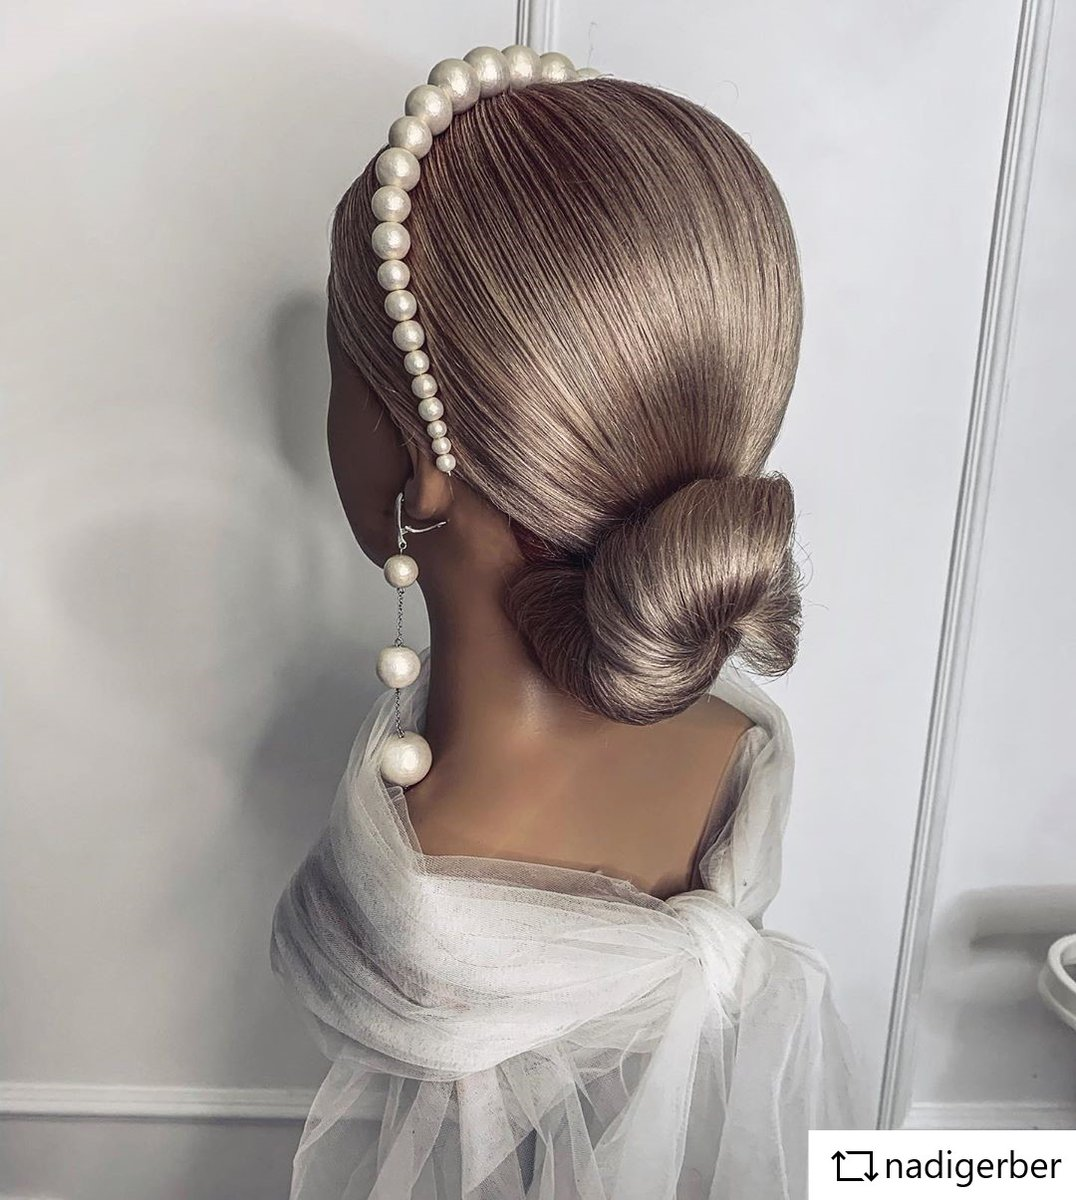 work by @nadigerber    JUST PERFECT!  https://www.limage.de/mannequin-head-raphaela-omc.html …  #limage #blond #updo #makeup#updos #braids #braid #weddinghair #wedding #love #Hairstylist #hairstyle #mannequinhead #hairgoals #waves #blondhair #dollhead #hollywoodhair #longhairpic.twitter.com/MNoVP0C30e